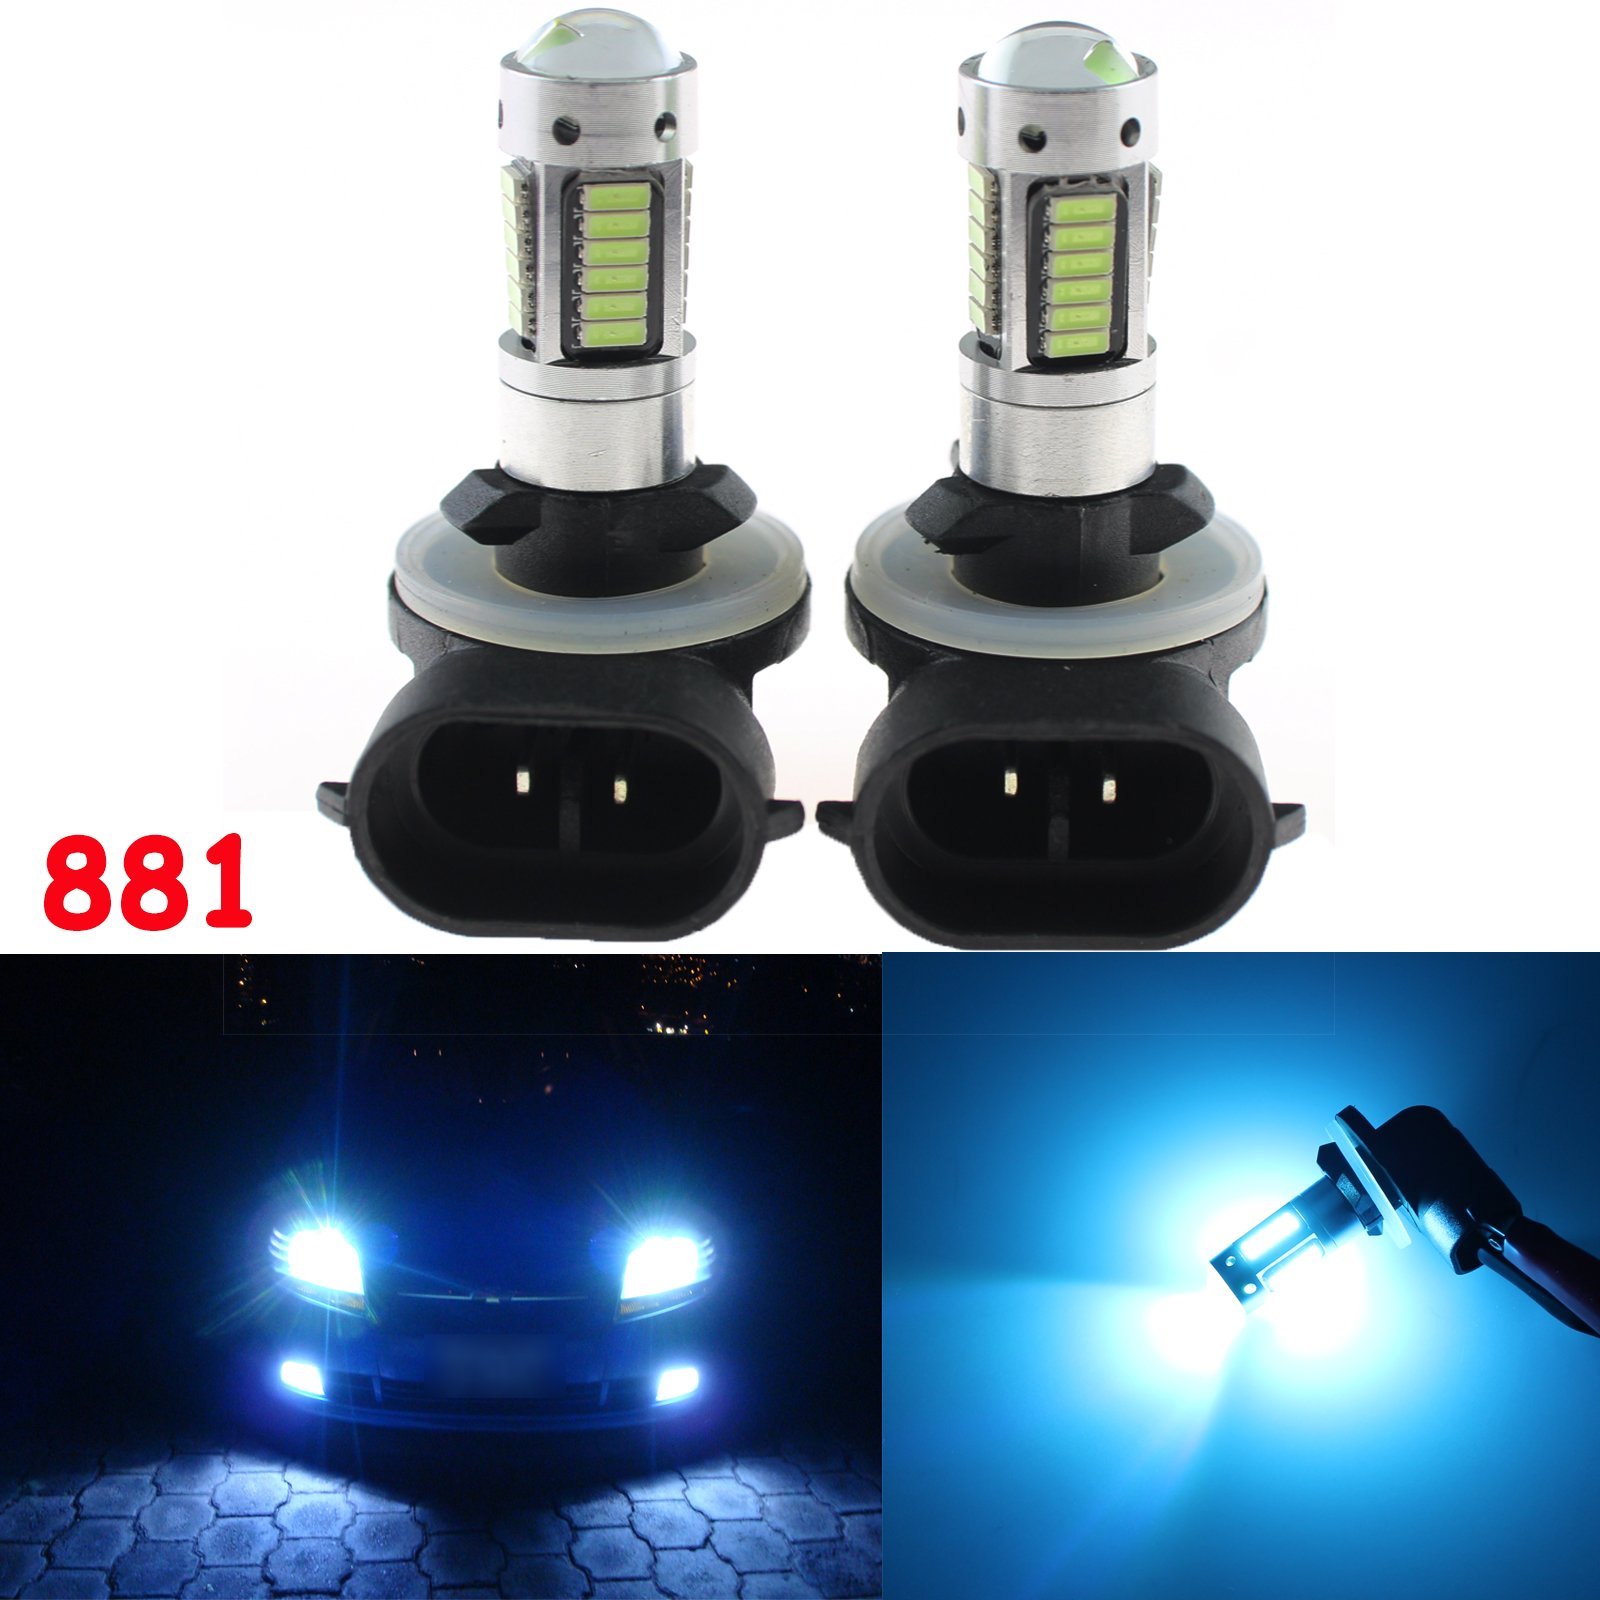 Xotic Tech 2 Pieces Bright White 881 862 886 10000K 30-SMD LED Bulbs for DRL Fog Driving Lights